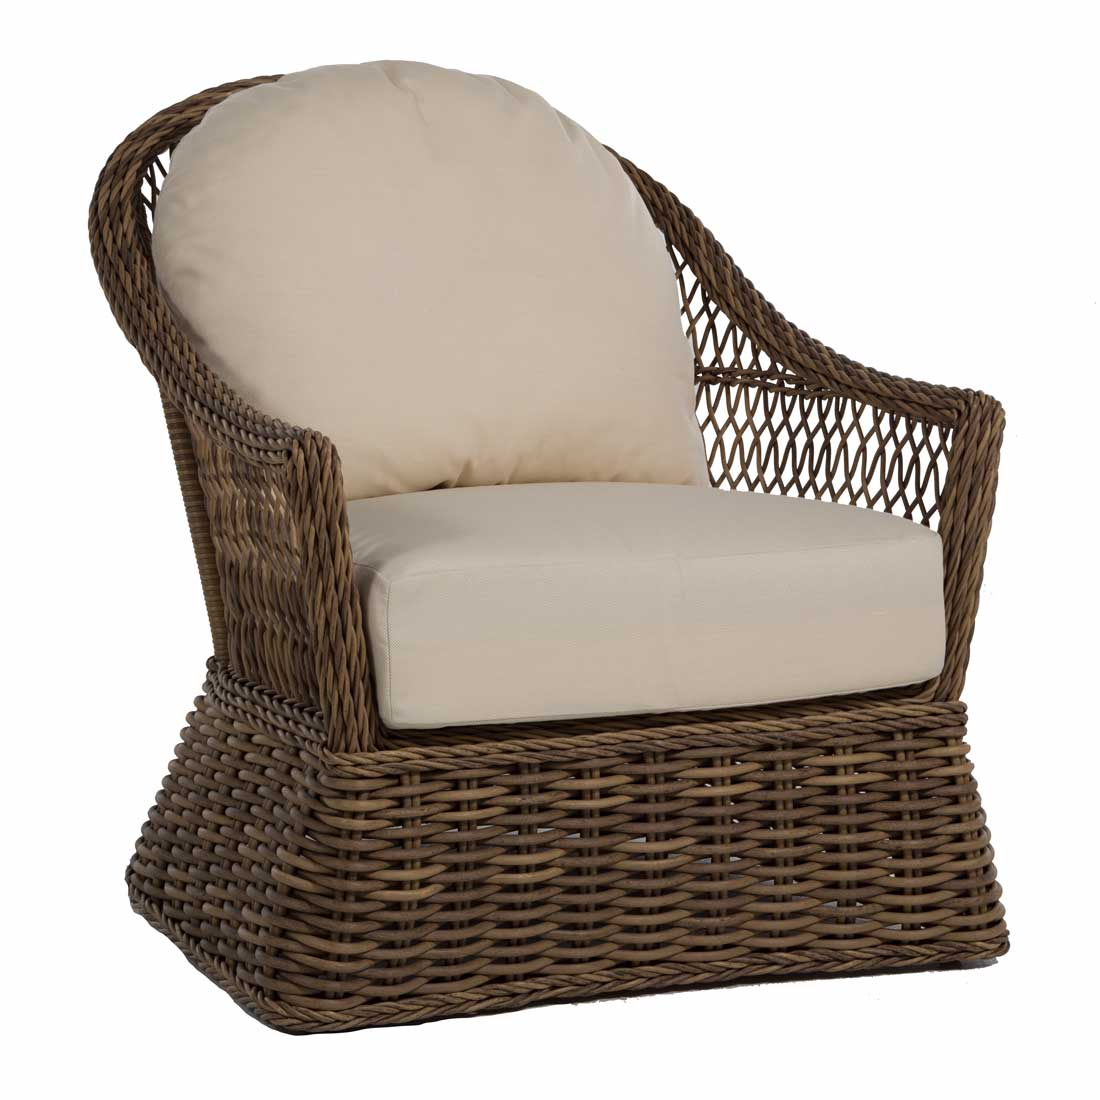 Soho Wicker Lounge Chair